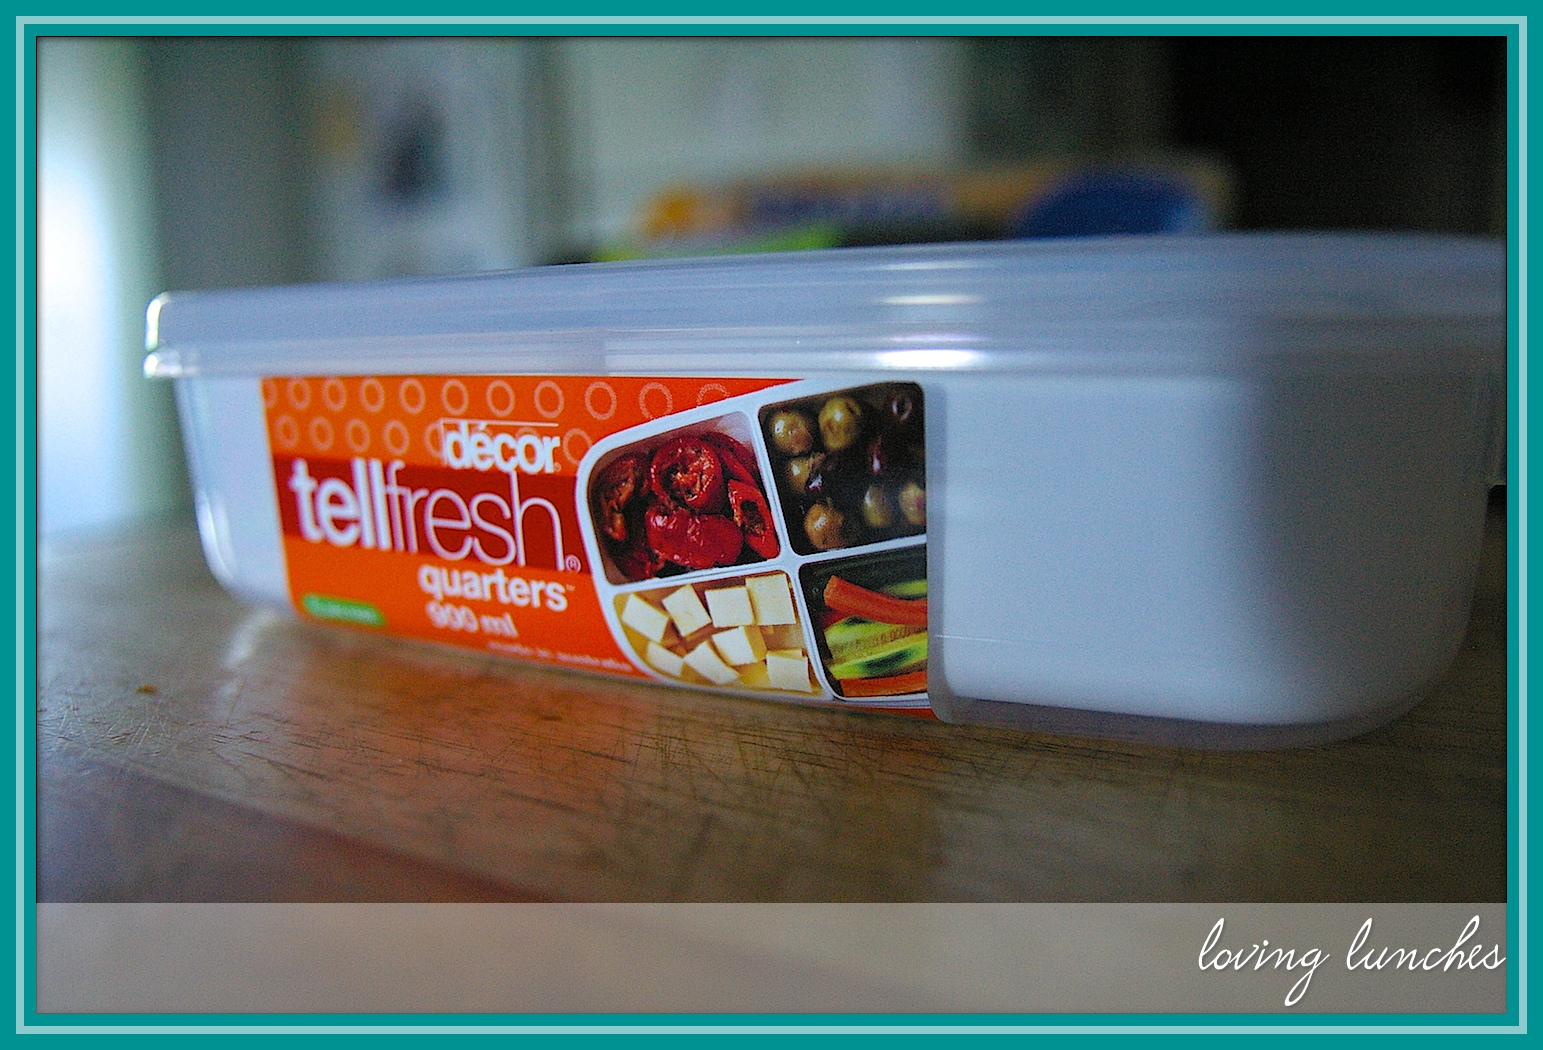 loving lunches decor tellfresh quarters giveaway